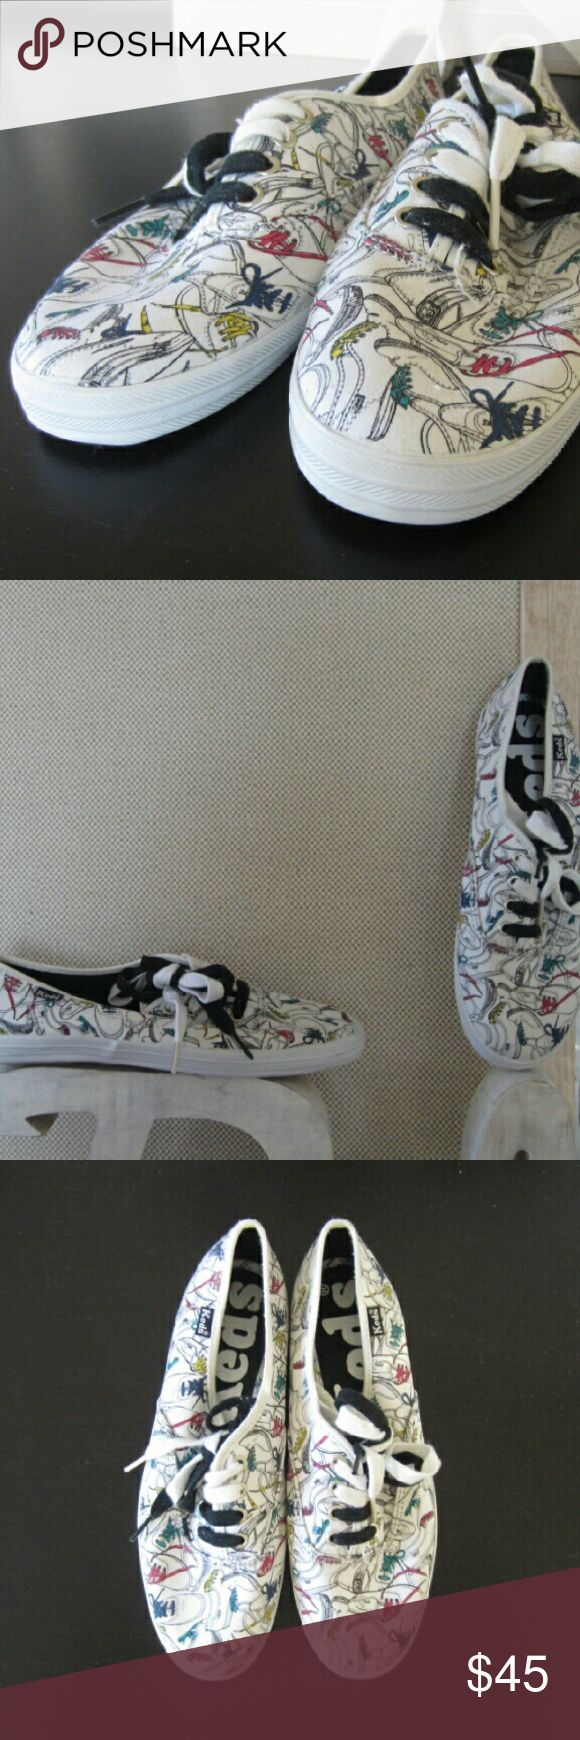 Keds Tennis Shoe with Cool Shoe Print KEDS /// SIZE: 7 /// LOOK AT THIS SHOE. IT'S AWESOME. /// CONDITION: BRAND NEW Keds Shoes Sneakers